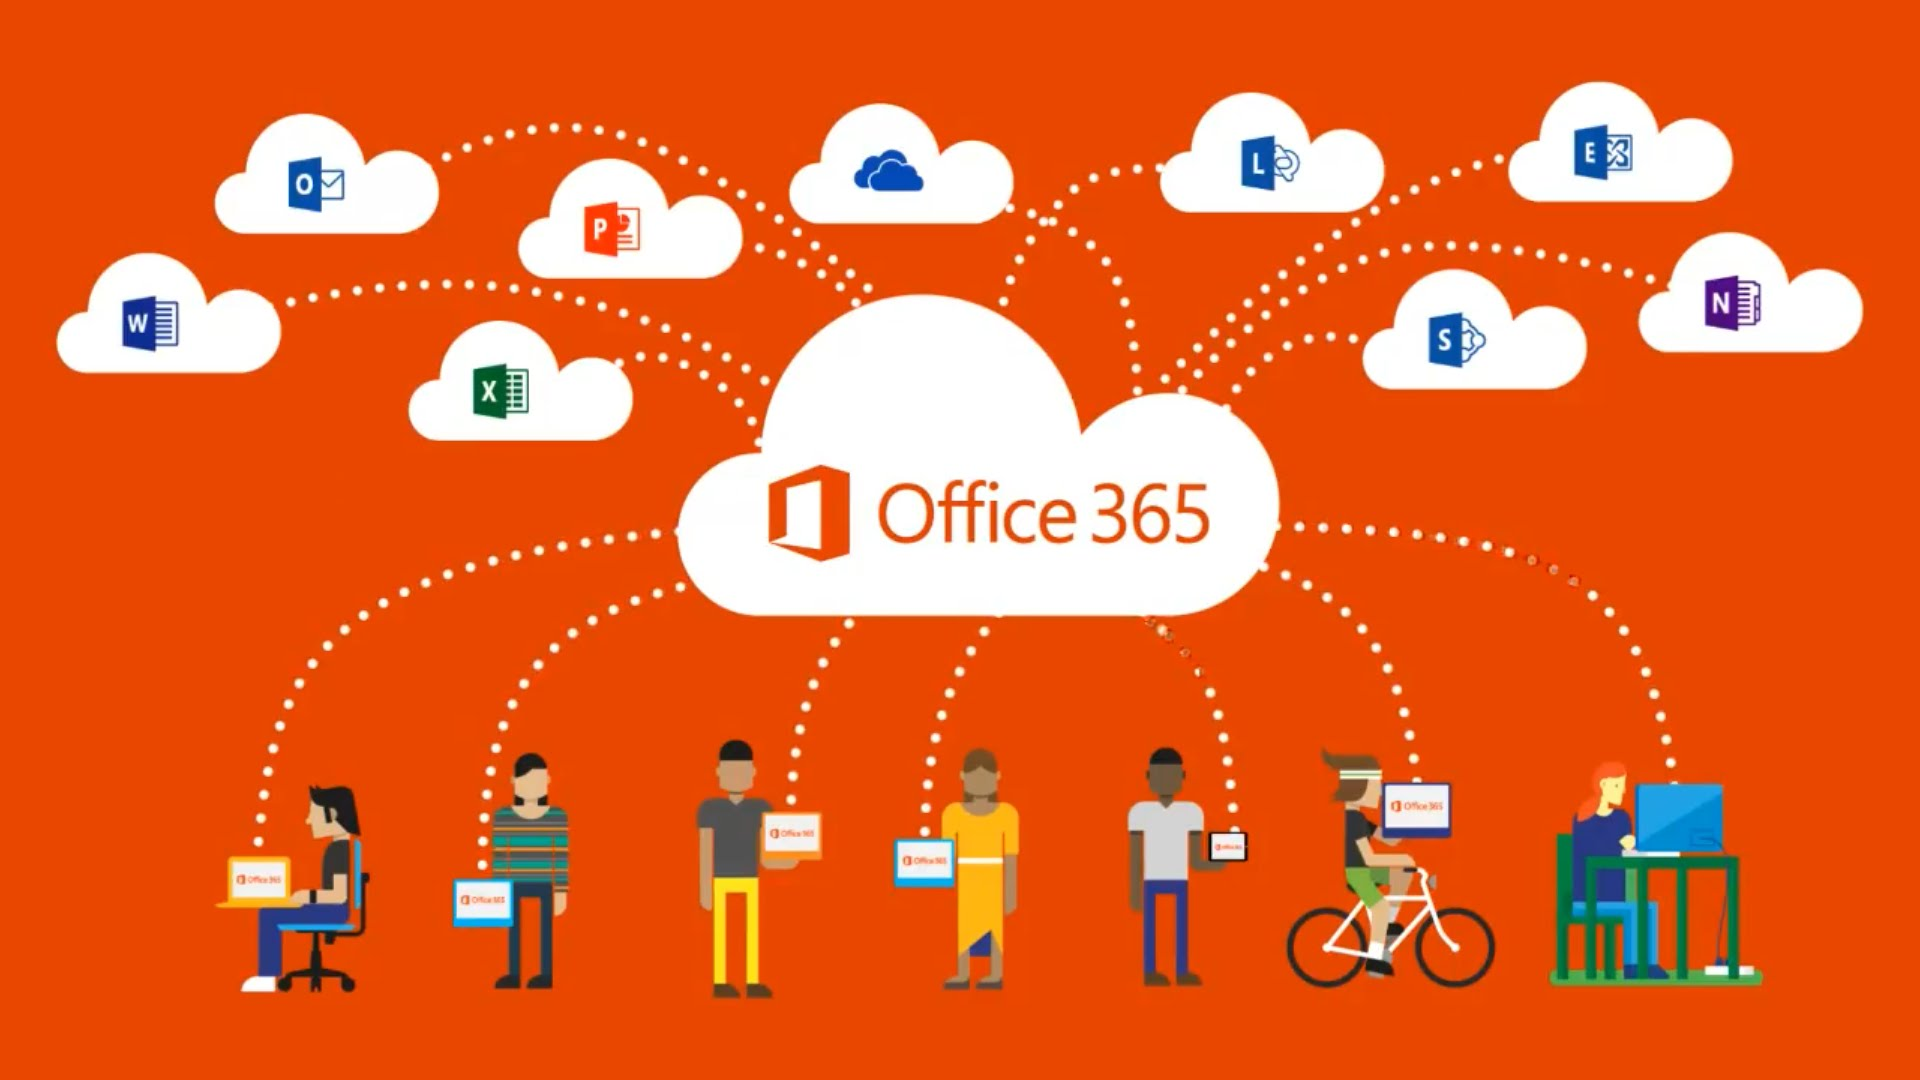 sharepoint online and office 365 new features being rolled out